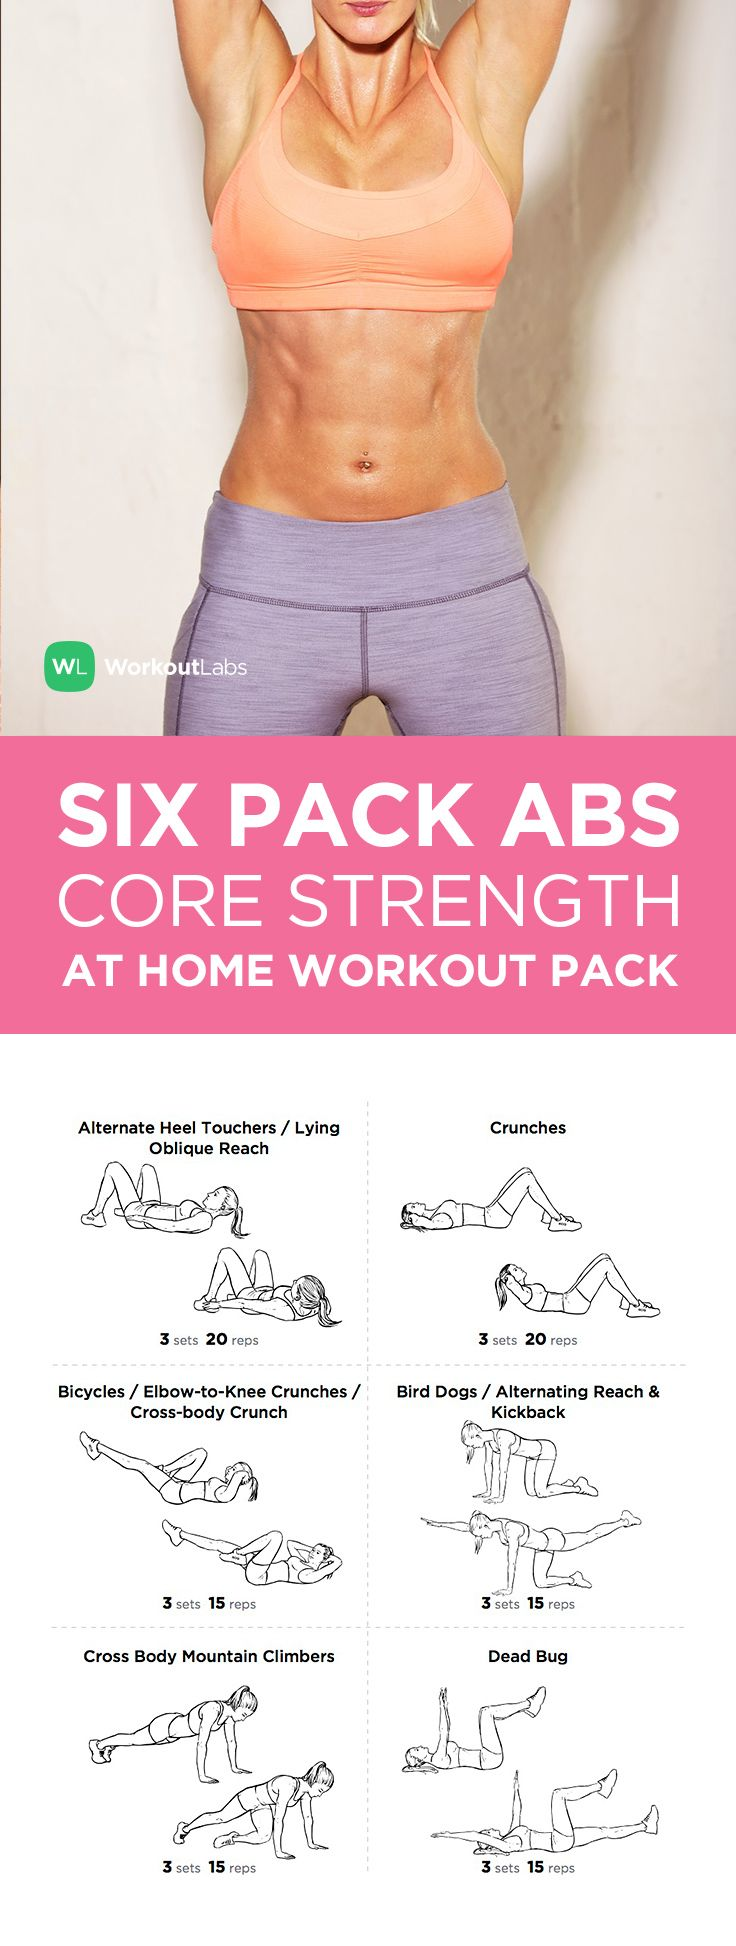 Visit https://WorkoutLabs.com/workout-packs/six-pack-abs-core-strength-at-home-workout-pack-for-men-women to download this Six Pack Abs Core Strength at Home Workout Pack for men & women